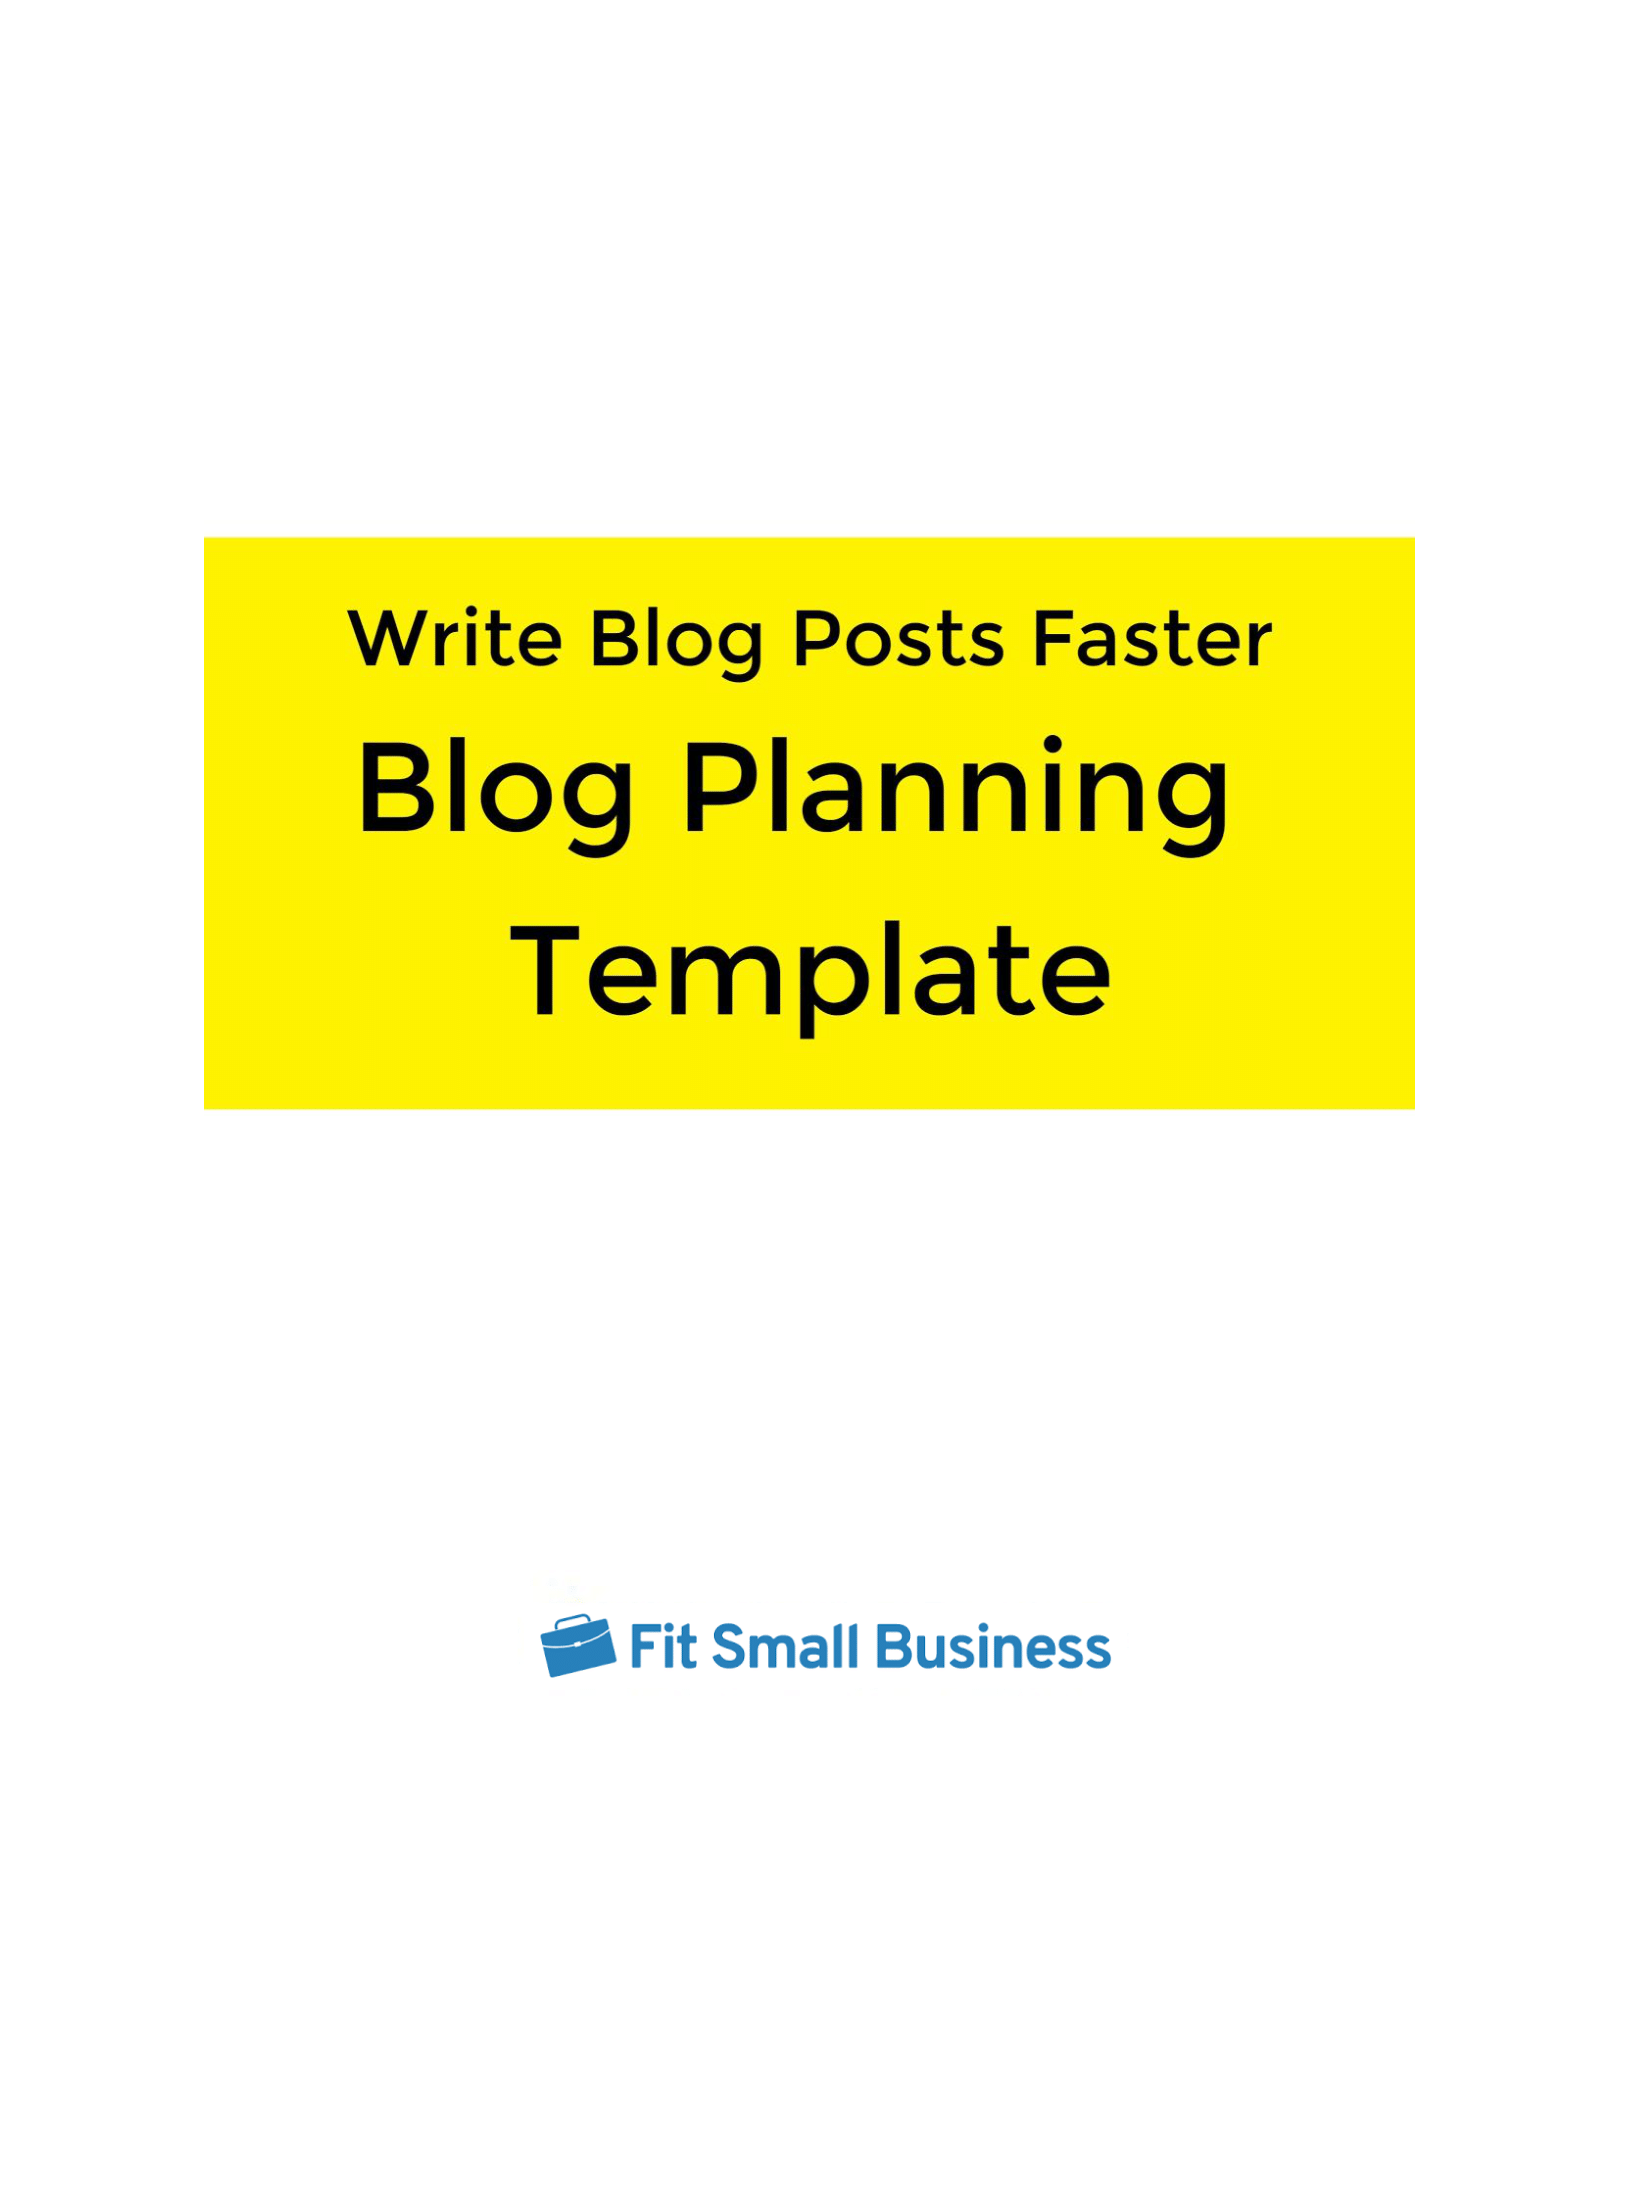 Write Blog Posts Faster template